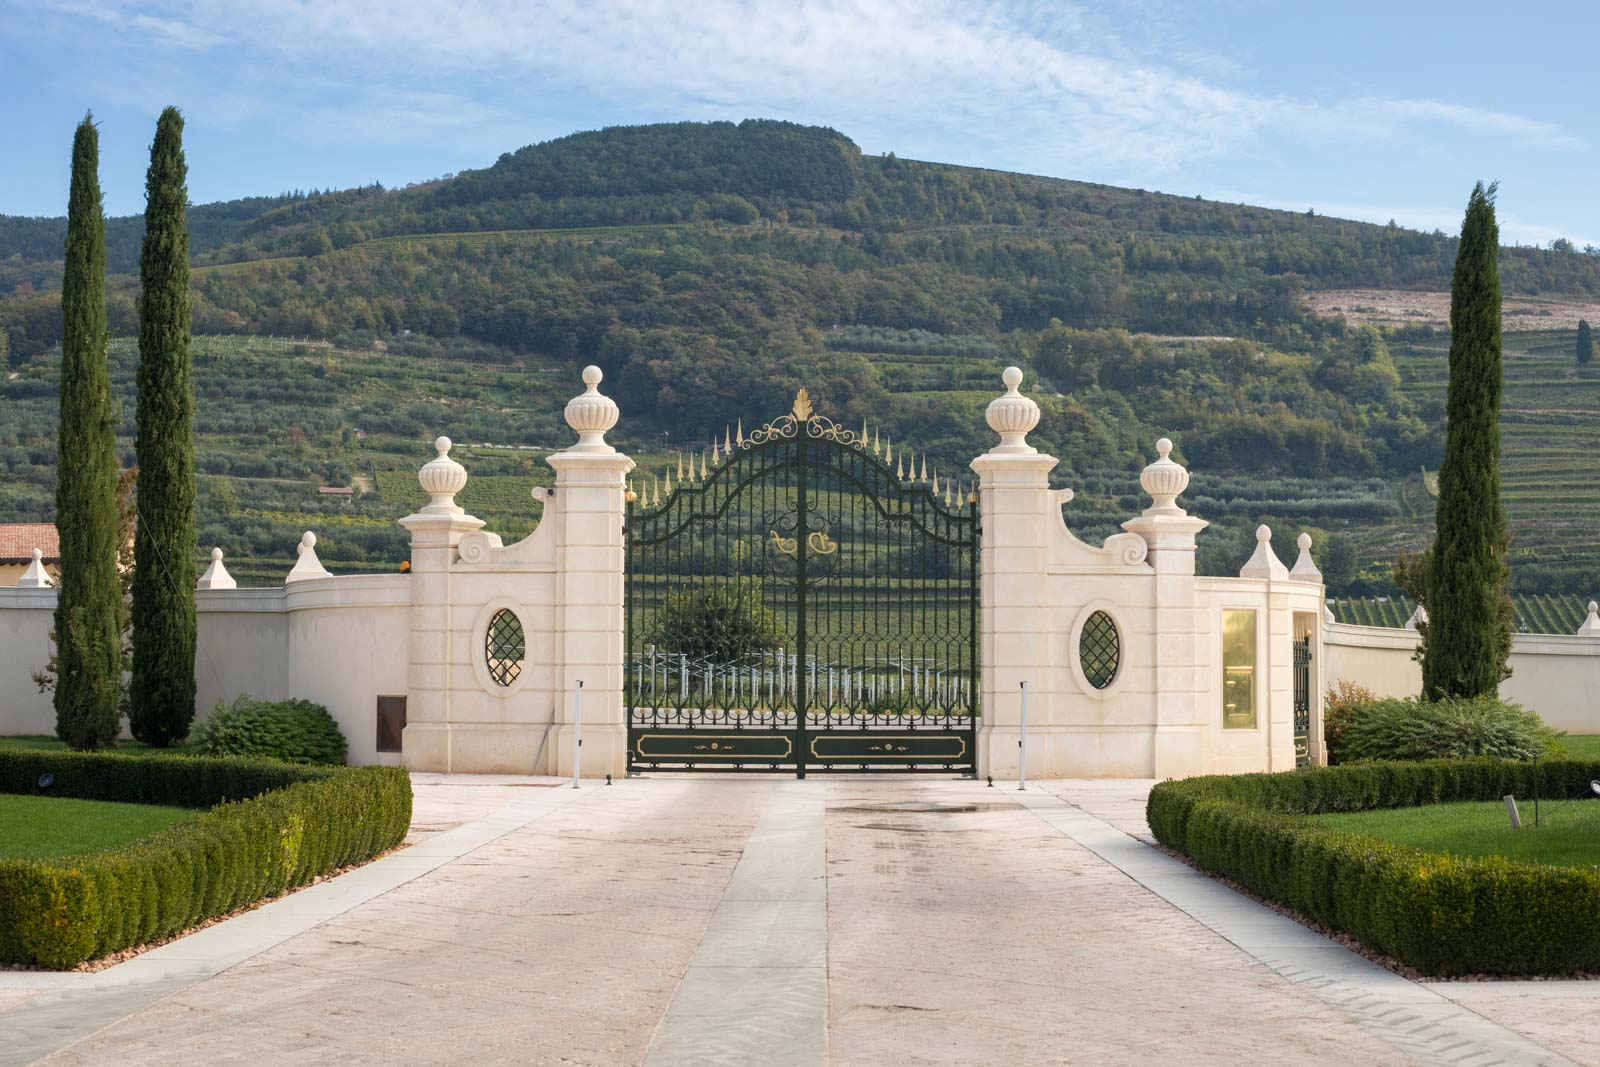 The entrance gate to the winery with vineyards on the hillside in the distance. ©Kevin Day/Opening a Bottle